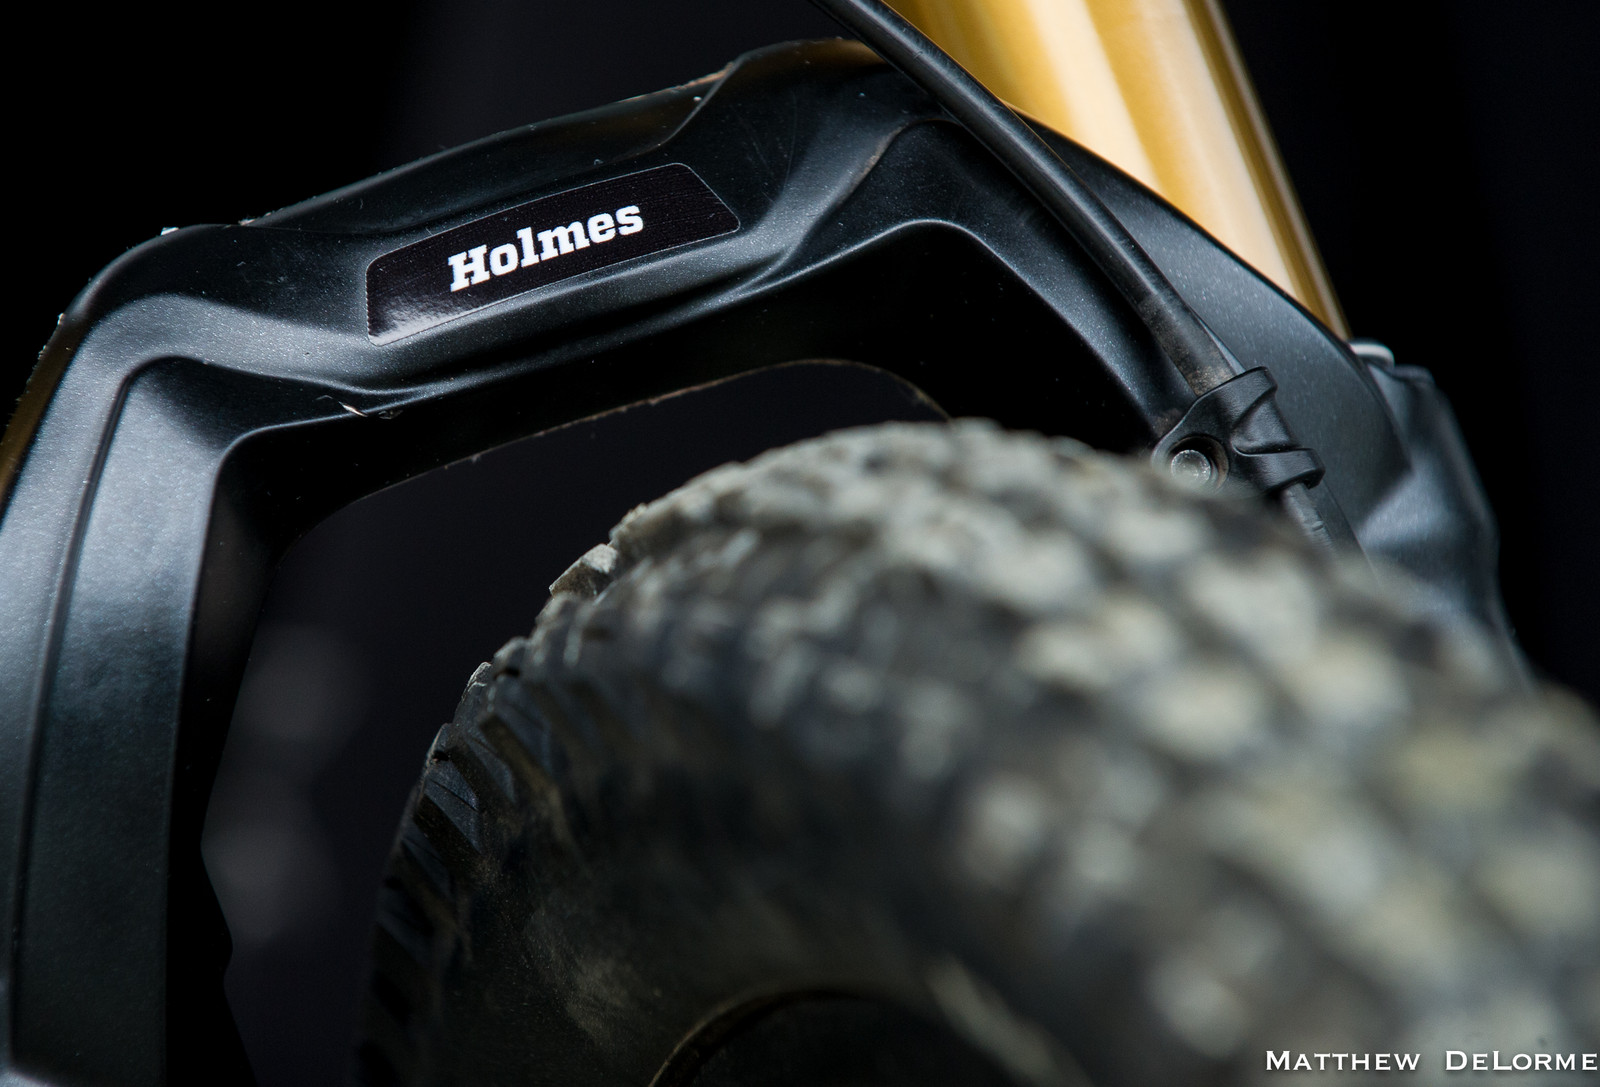 Holmes is Gwin's New Nickname? - Pro DH Bikes from the U.S. National Championships - Mountain Biking Pictures - Vital MTB